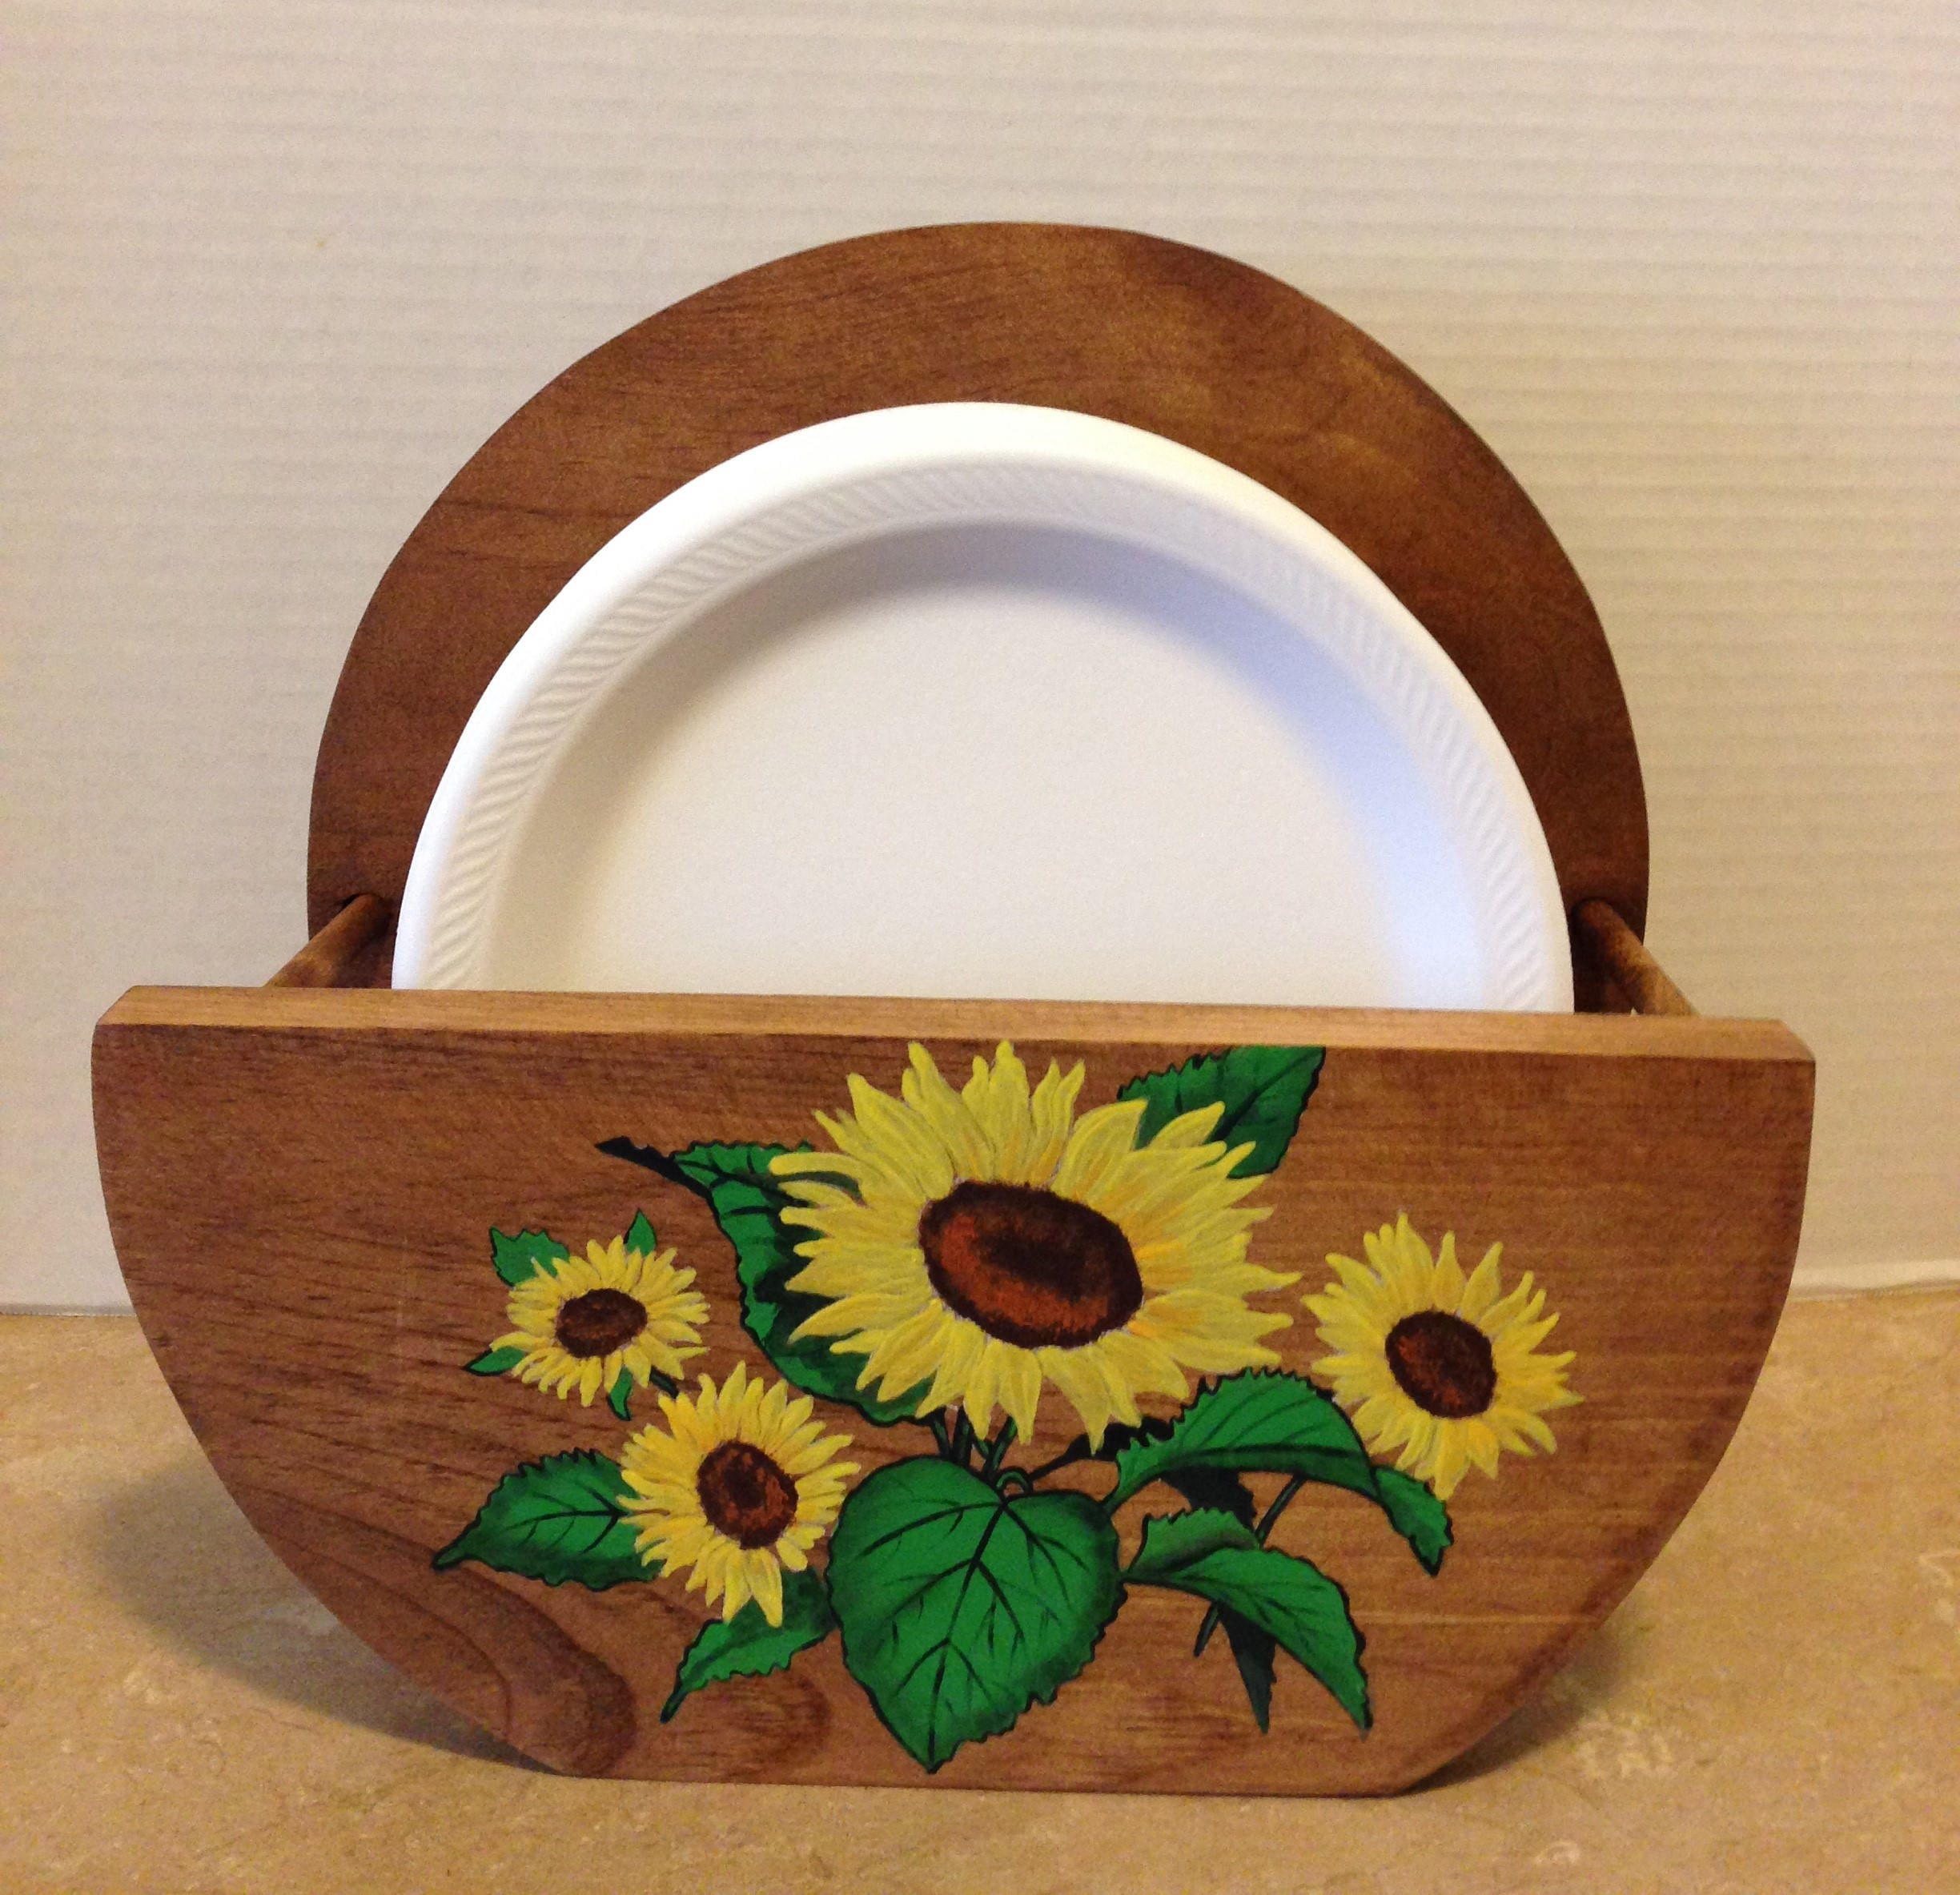 Paper Plate Holder Wooden Plate Holder Holder for Plates Sunflower Decor Sunflowers Sunflower Kitchen Country Decor Hand painted : paper plate sunflower - pezcame.com